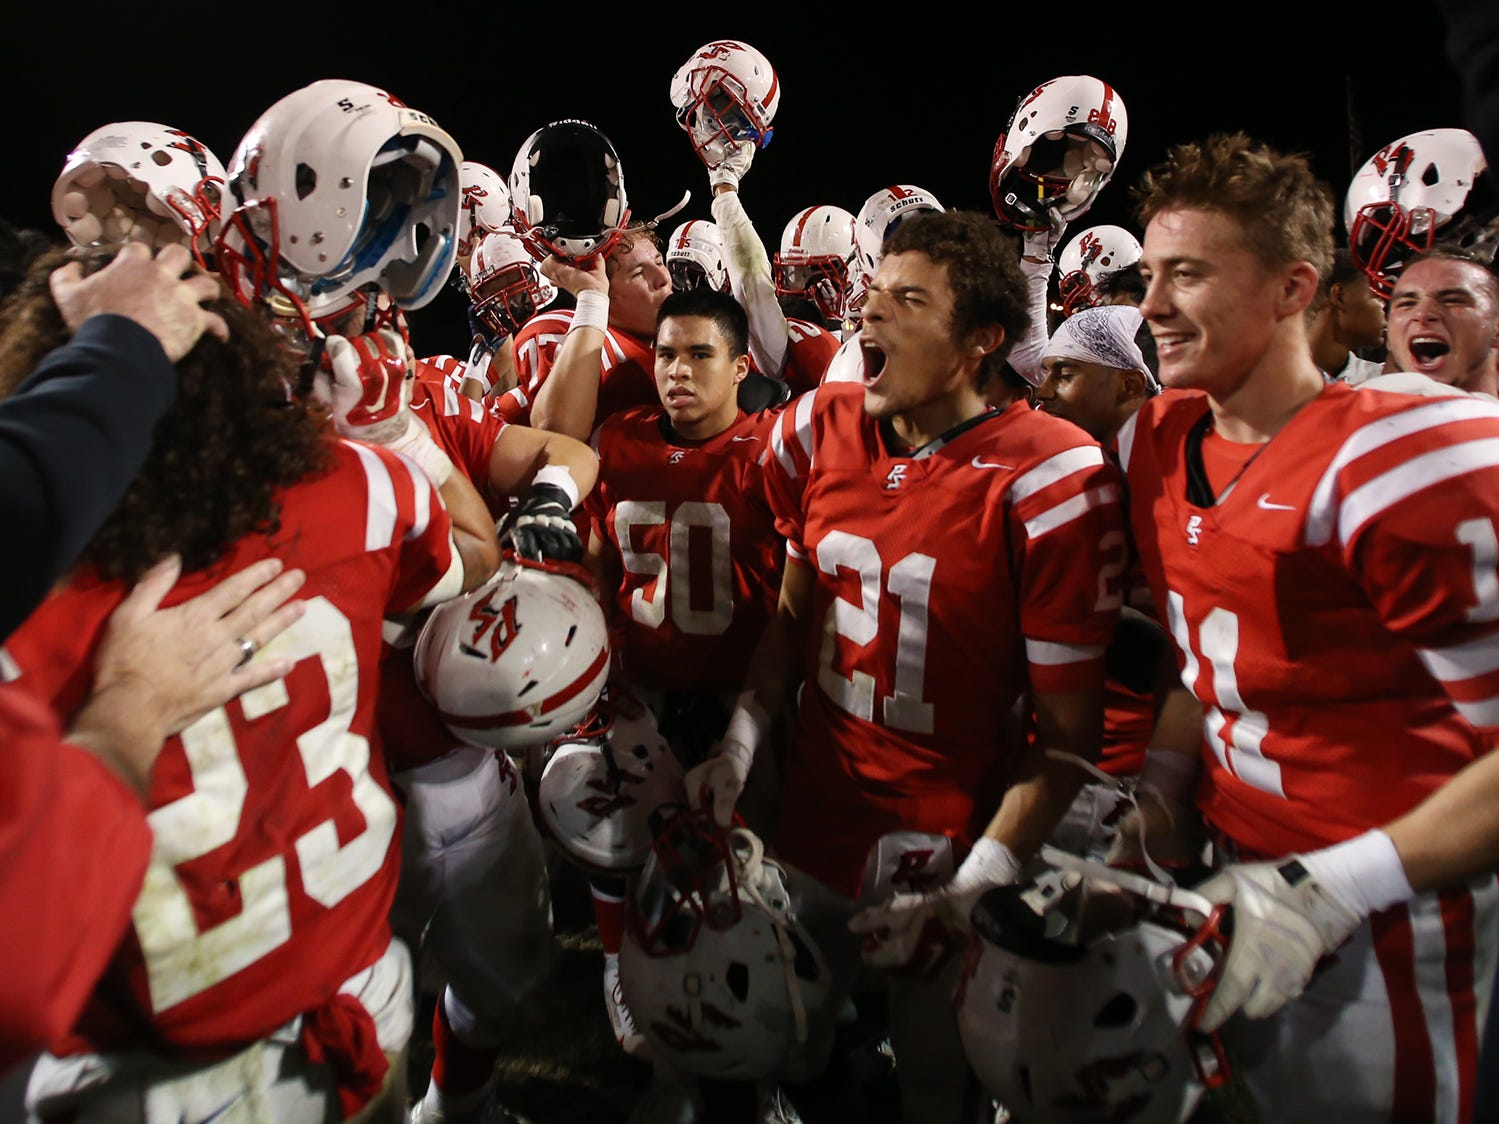 Players celebrate after Palm Springs defeated Oak Hills in their CIF semifinal football game at Palm Springs High. The Indians won 27-23.